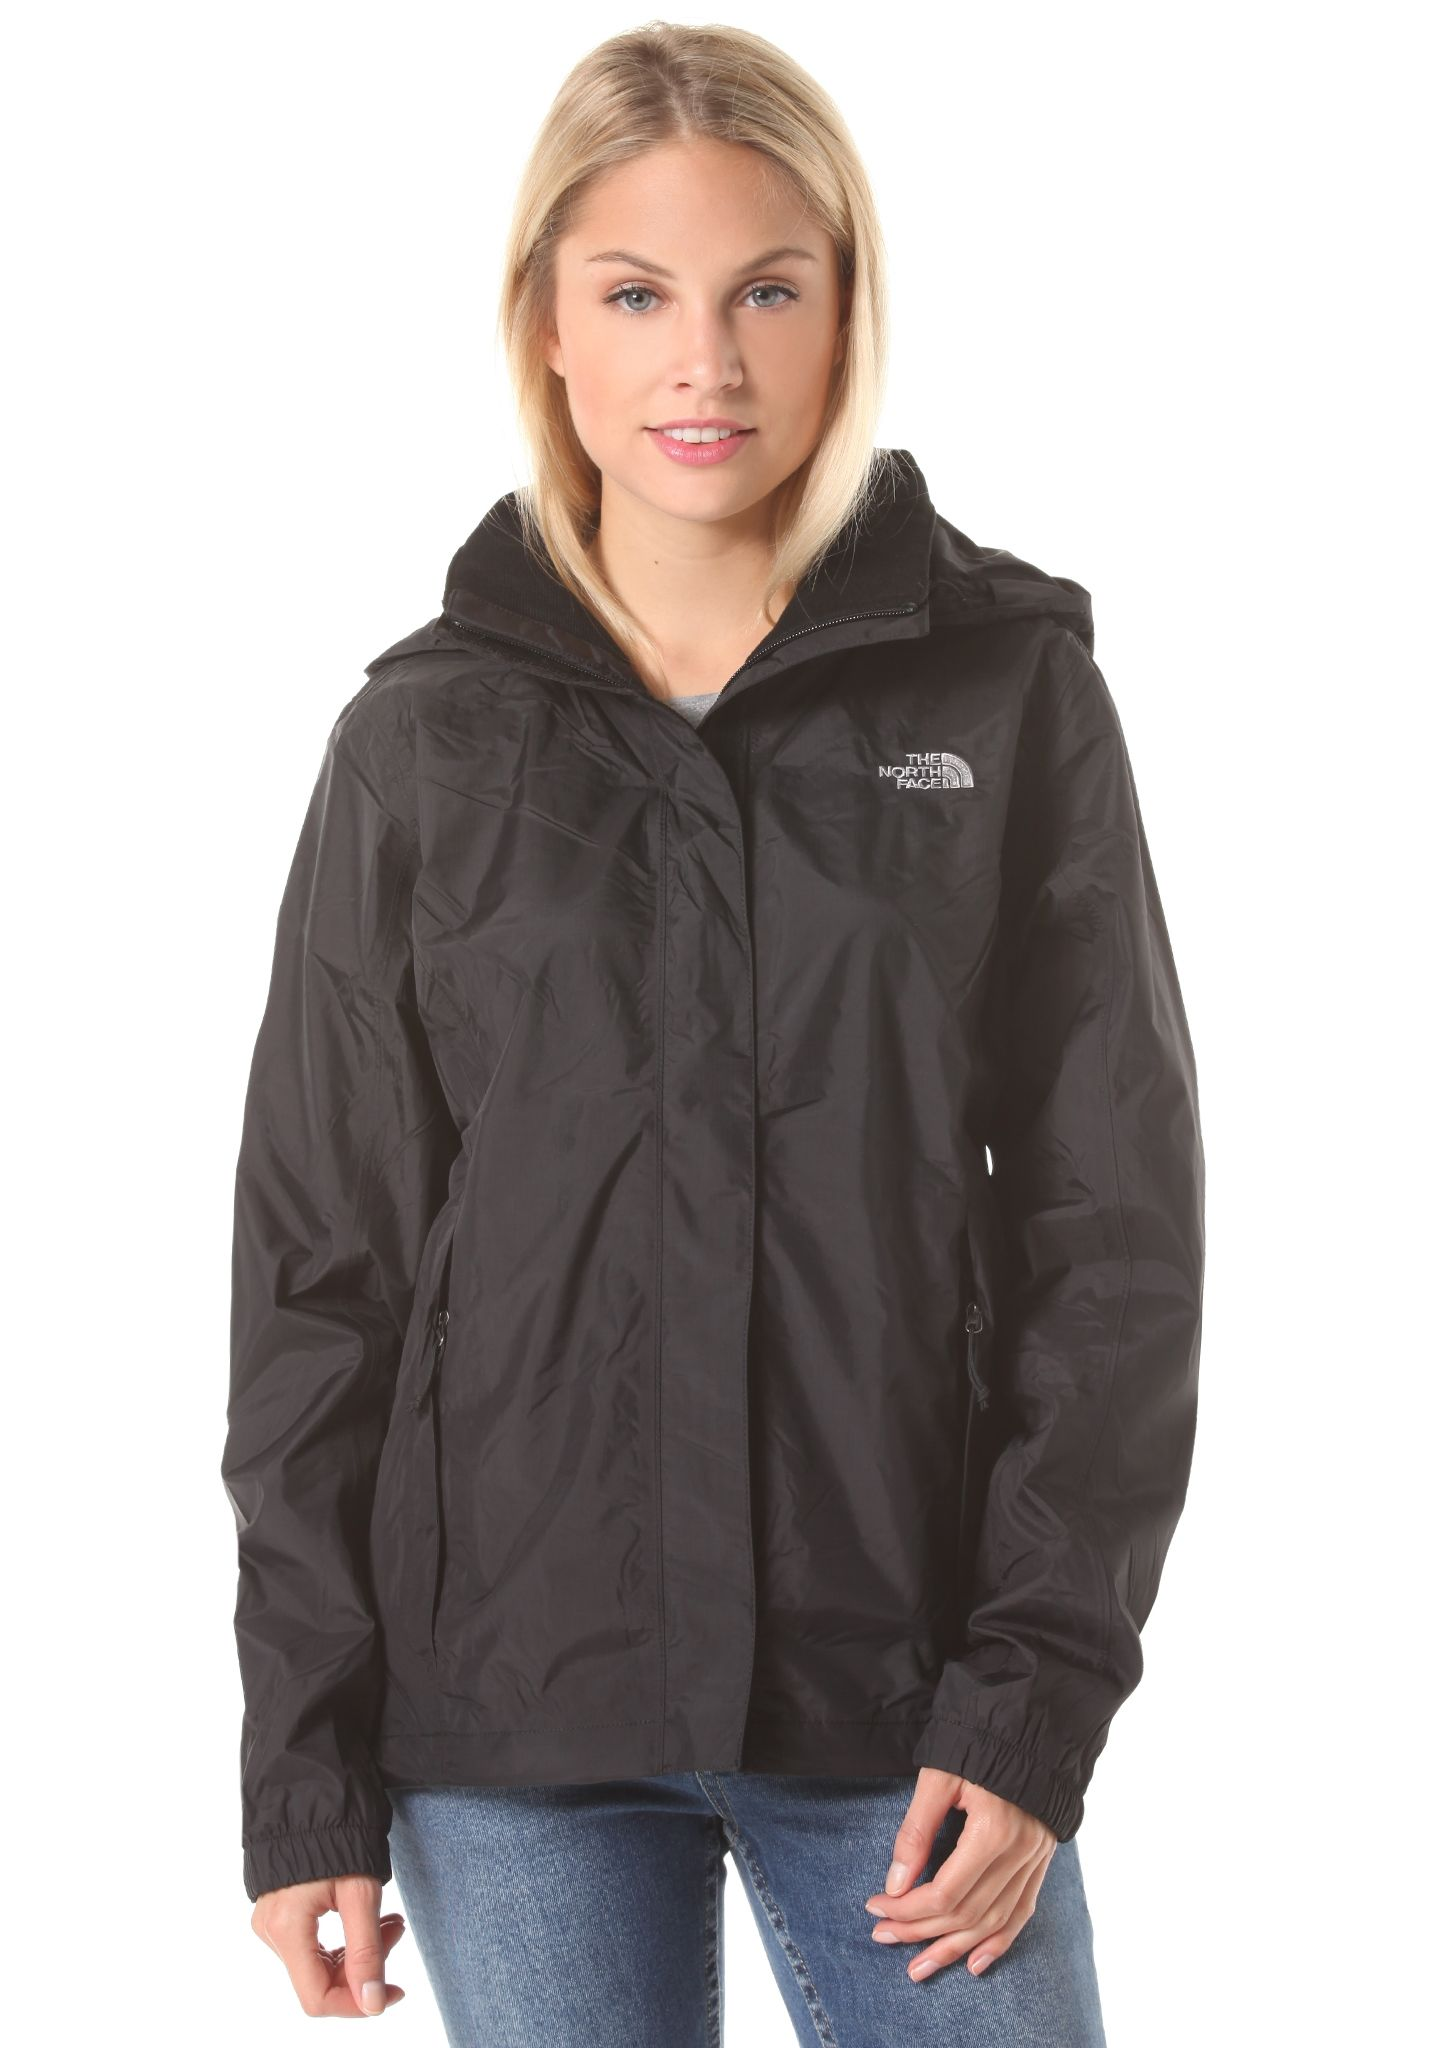 Resolve Planet Jas North Voor Outdoor The Zwart Sports Dames Face ZwqpEpO